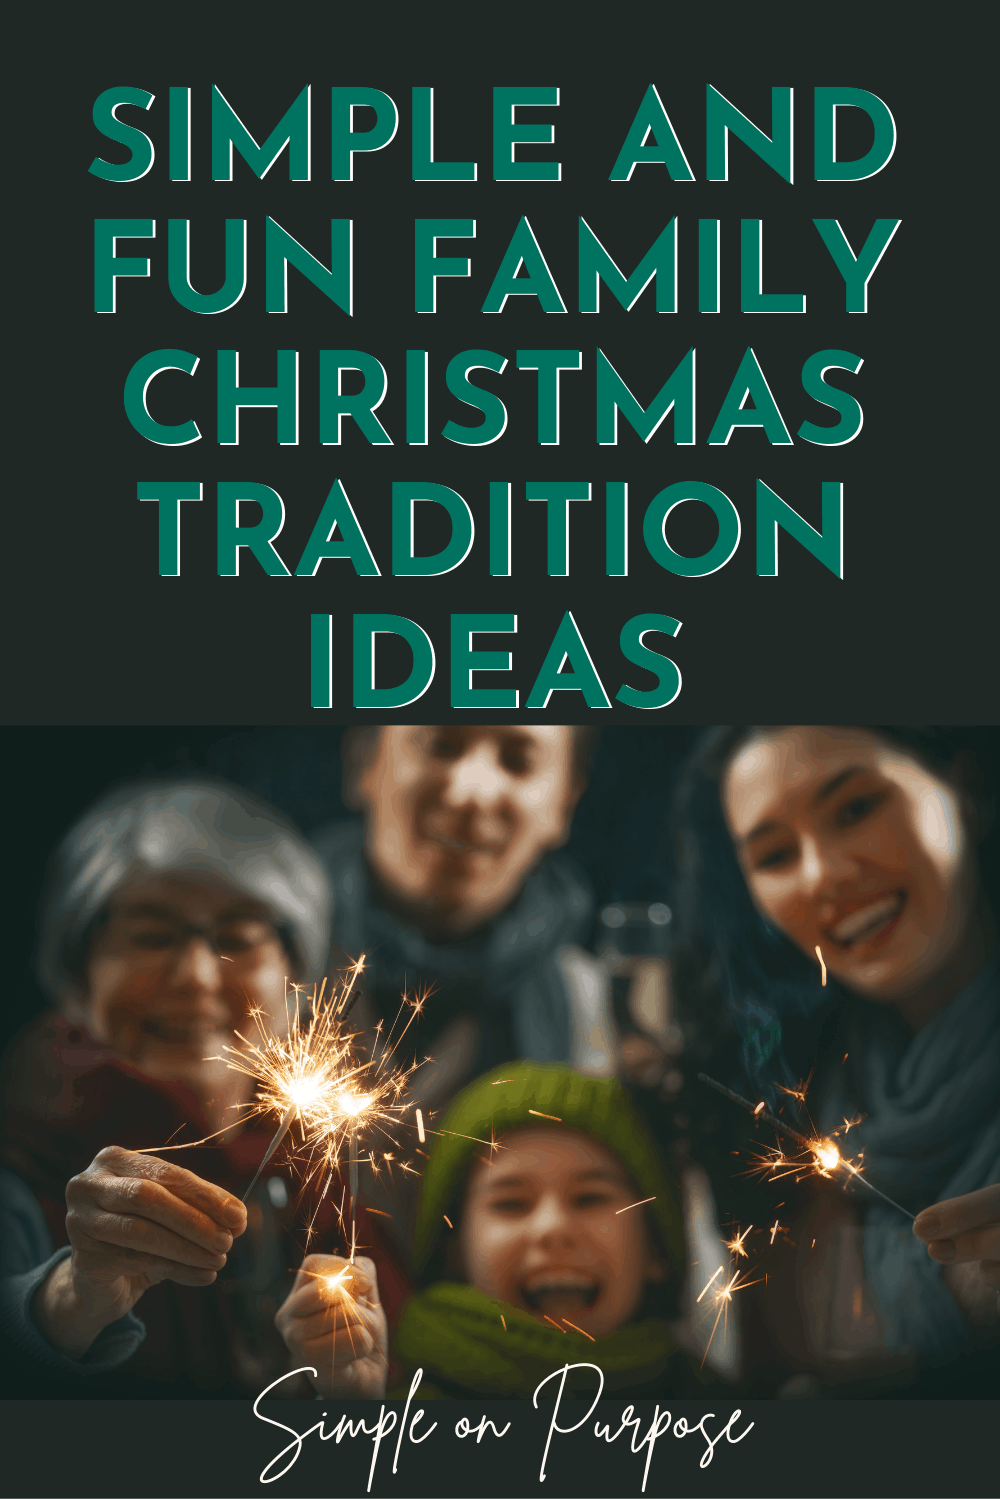 Simple and Fun Family Christmas Tradition Ideas